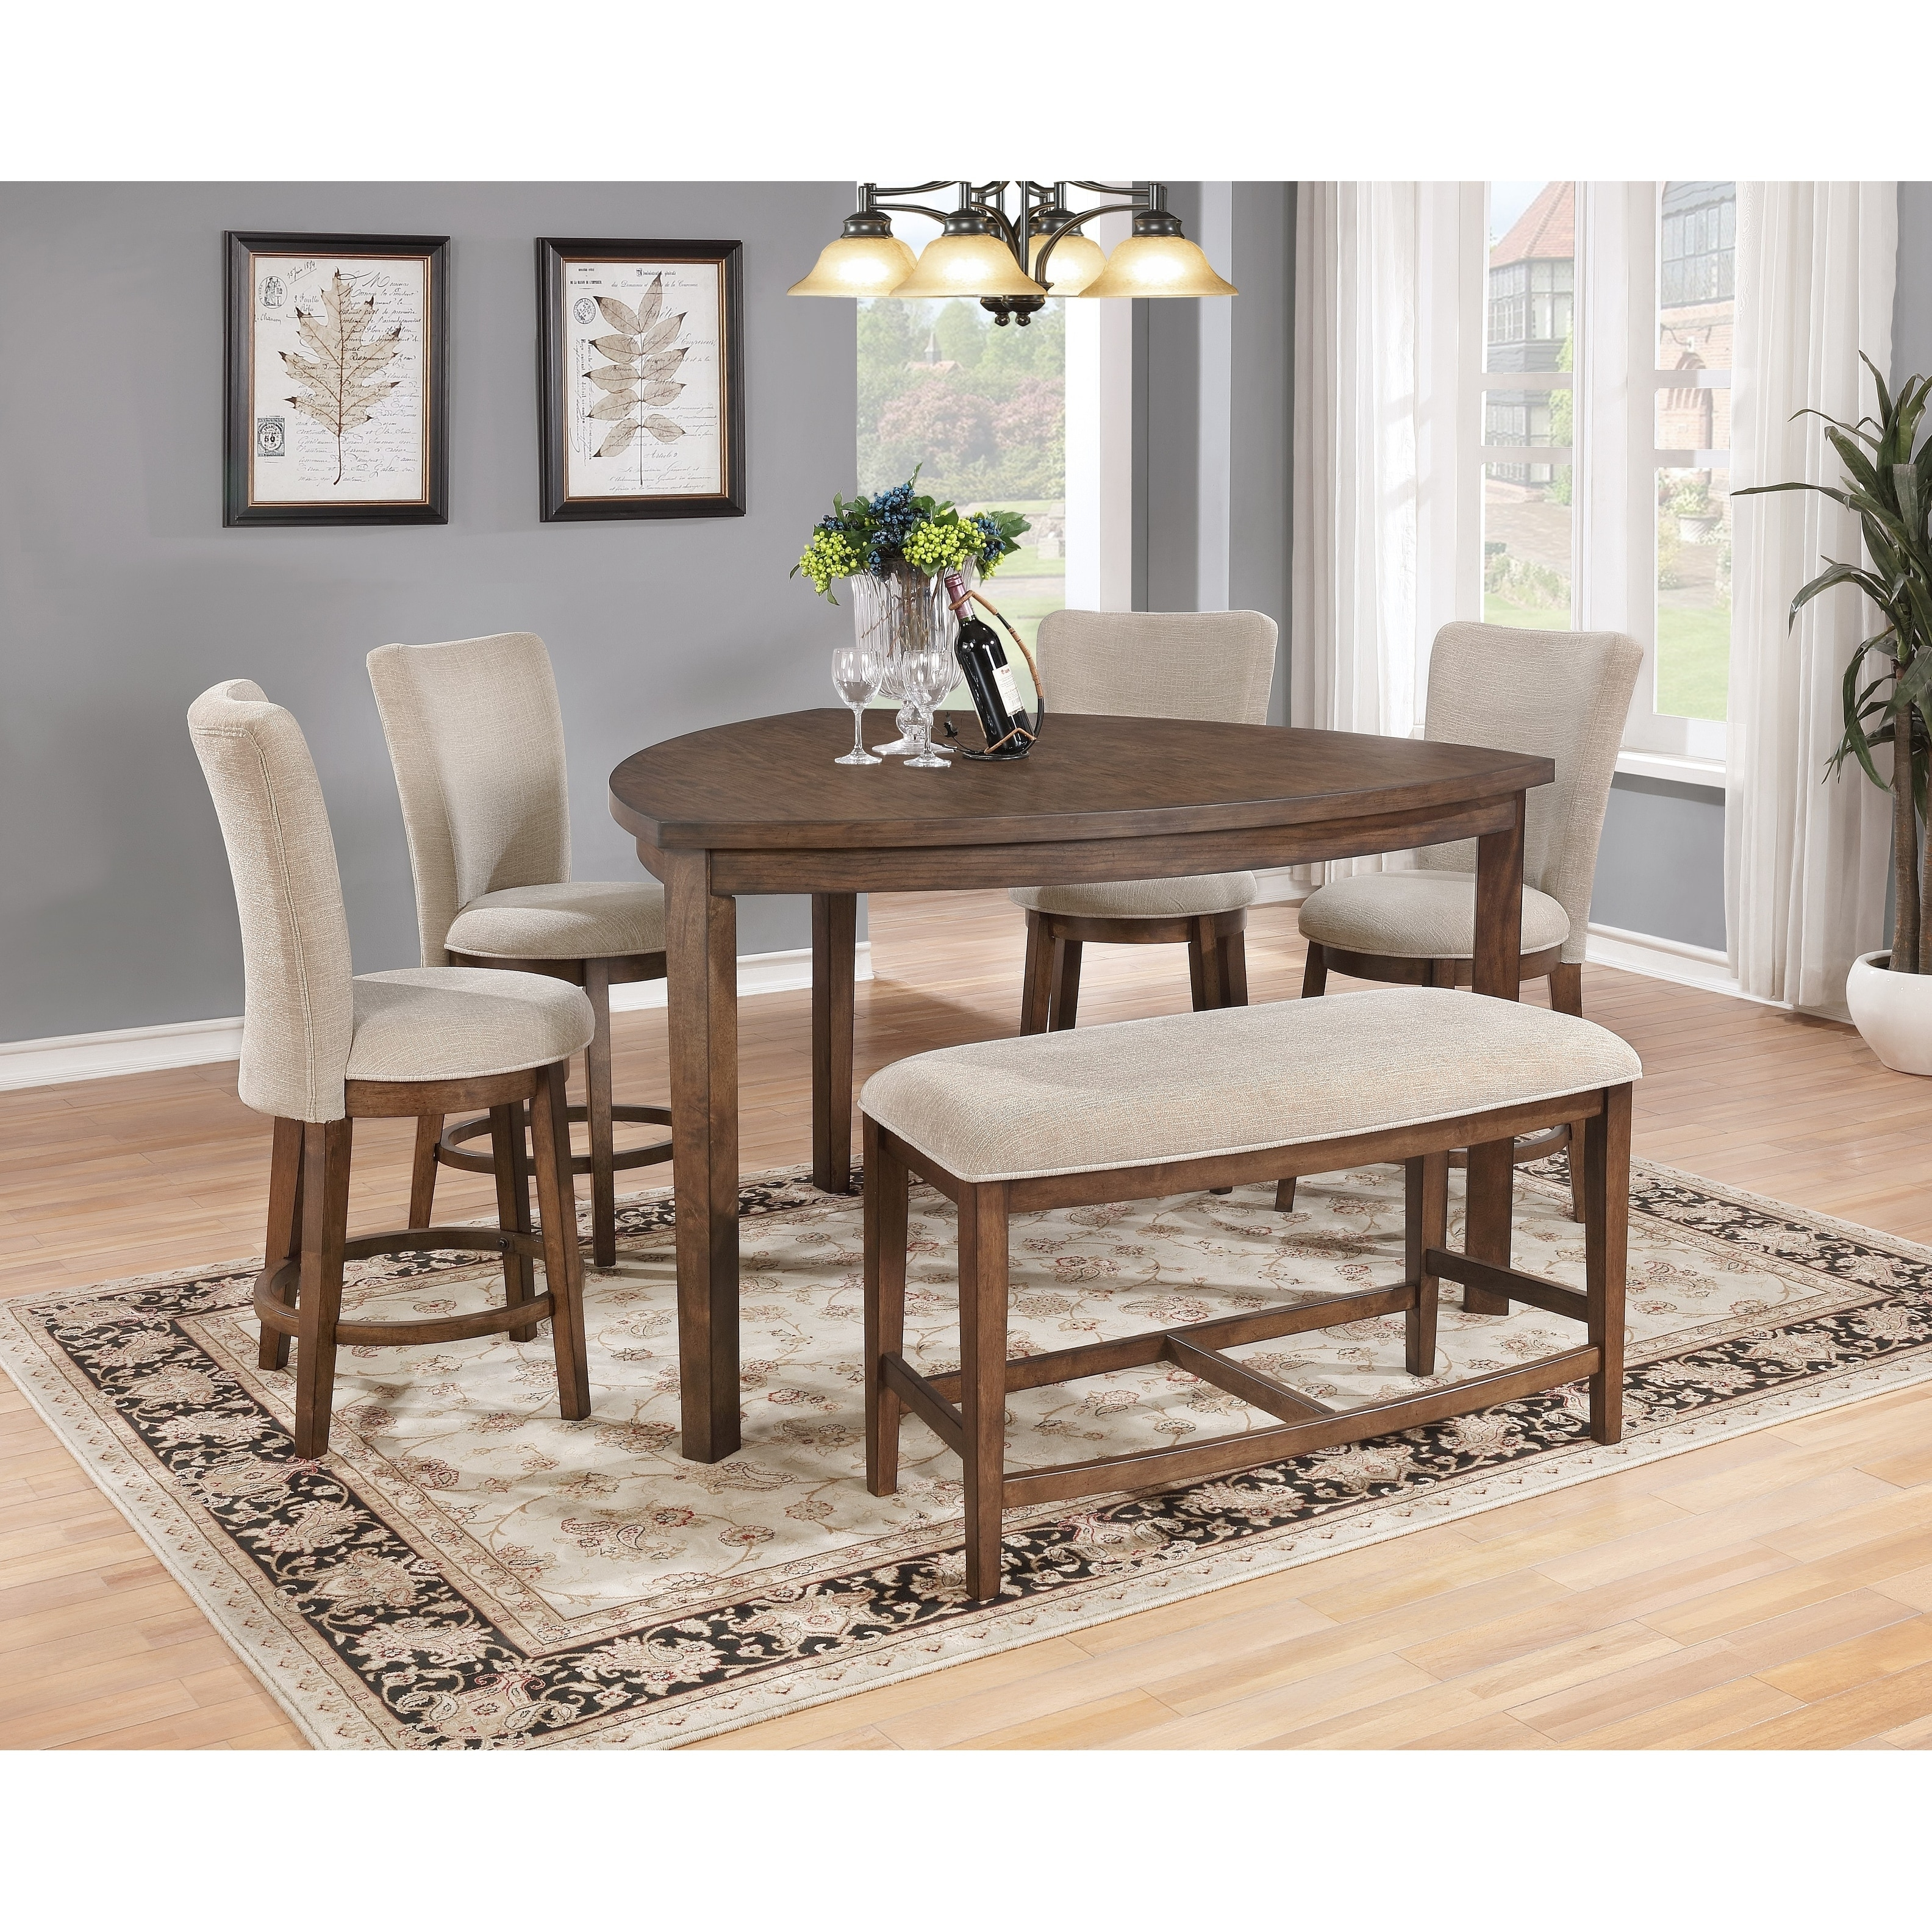 Best Quality Furniture 6 Piece Pecan Counter Height Dining Table Set With Bench Overstock 17965280